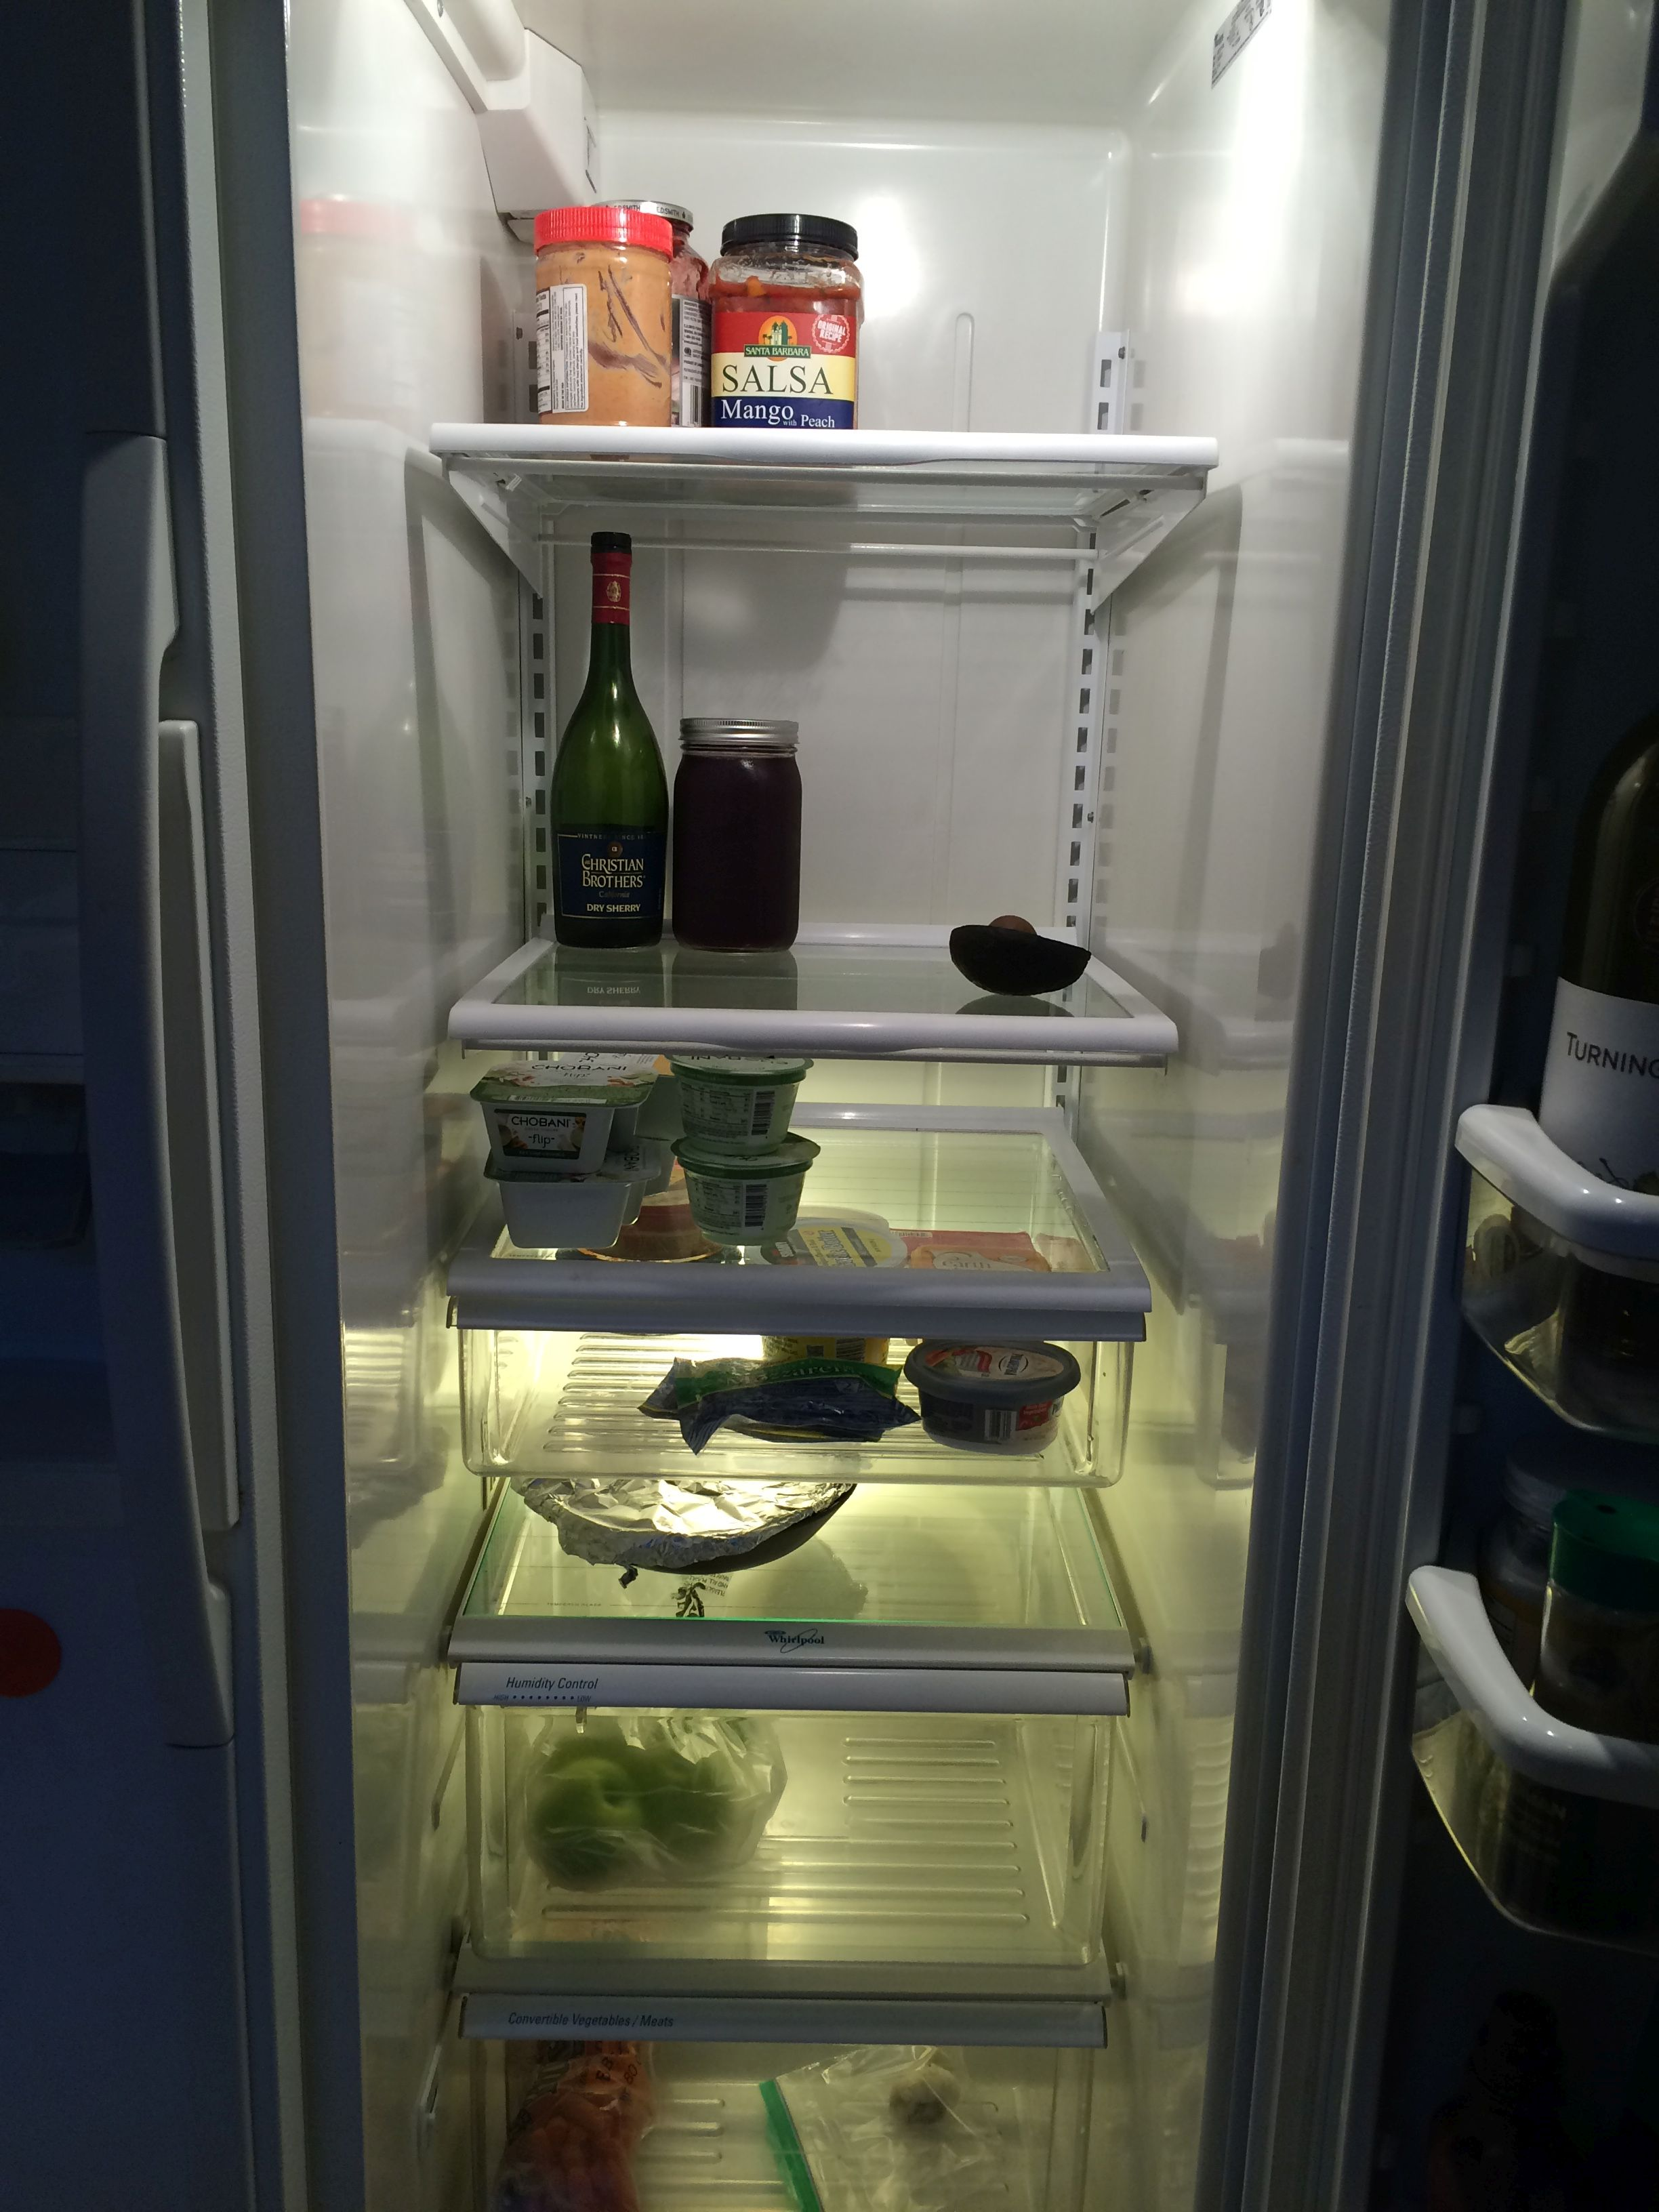 Post-vacation refrigerator contents, Salt Lake City, Utah, May 9, 2016 | Photo by  and courtesy of Erynn Montgomery, St. George News